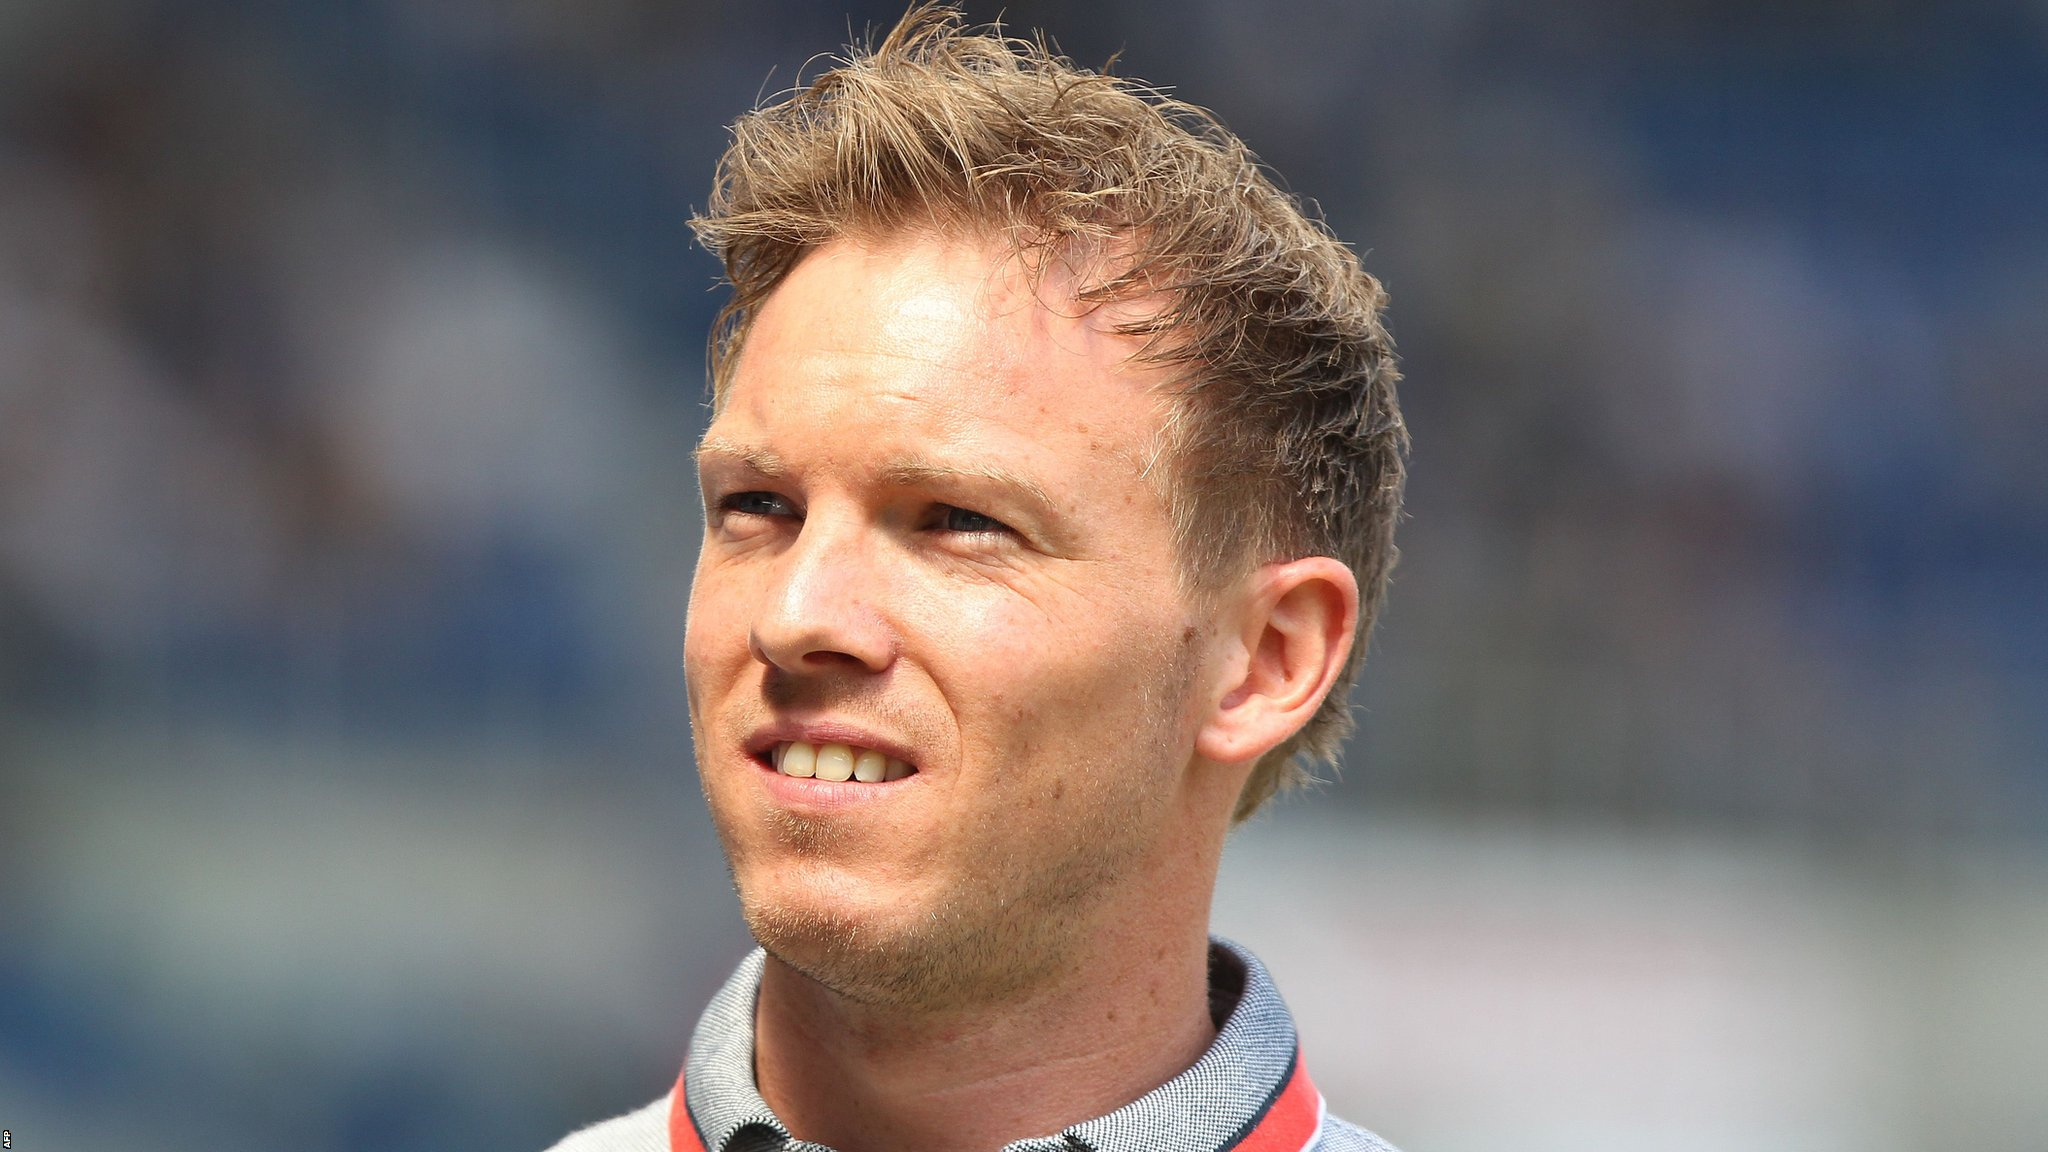 Julian Nagelsmann: Hoffenheim coach to join RB Leipzig after 2018-19 season